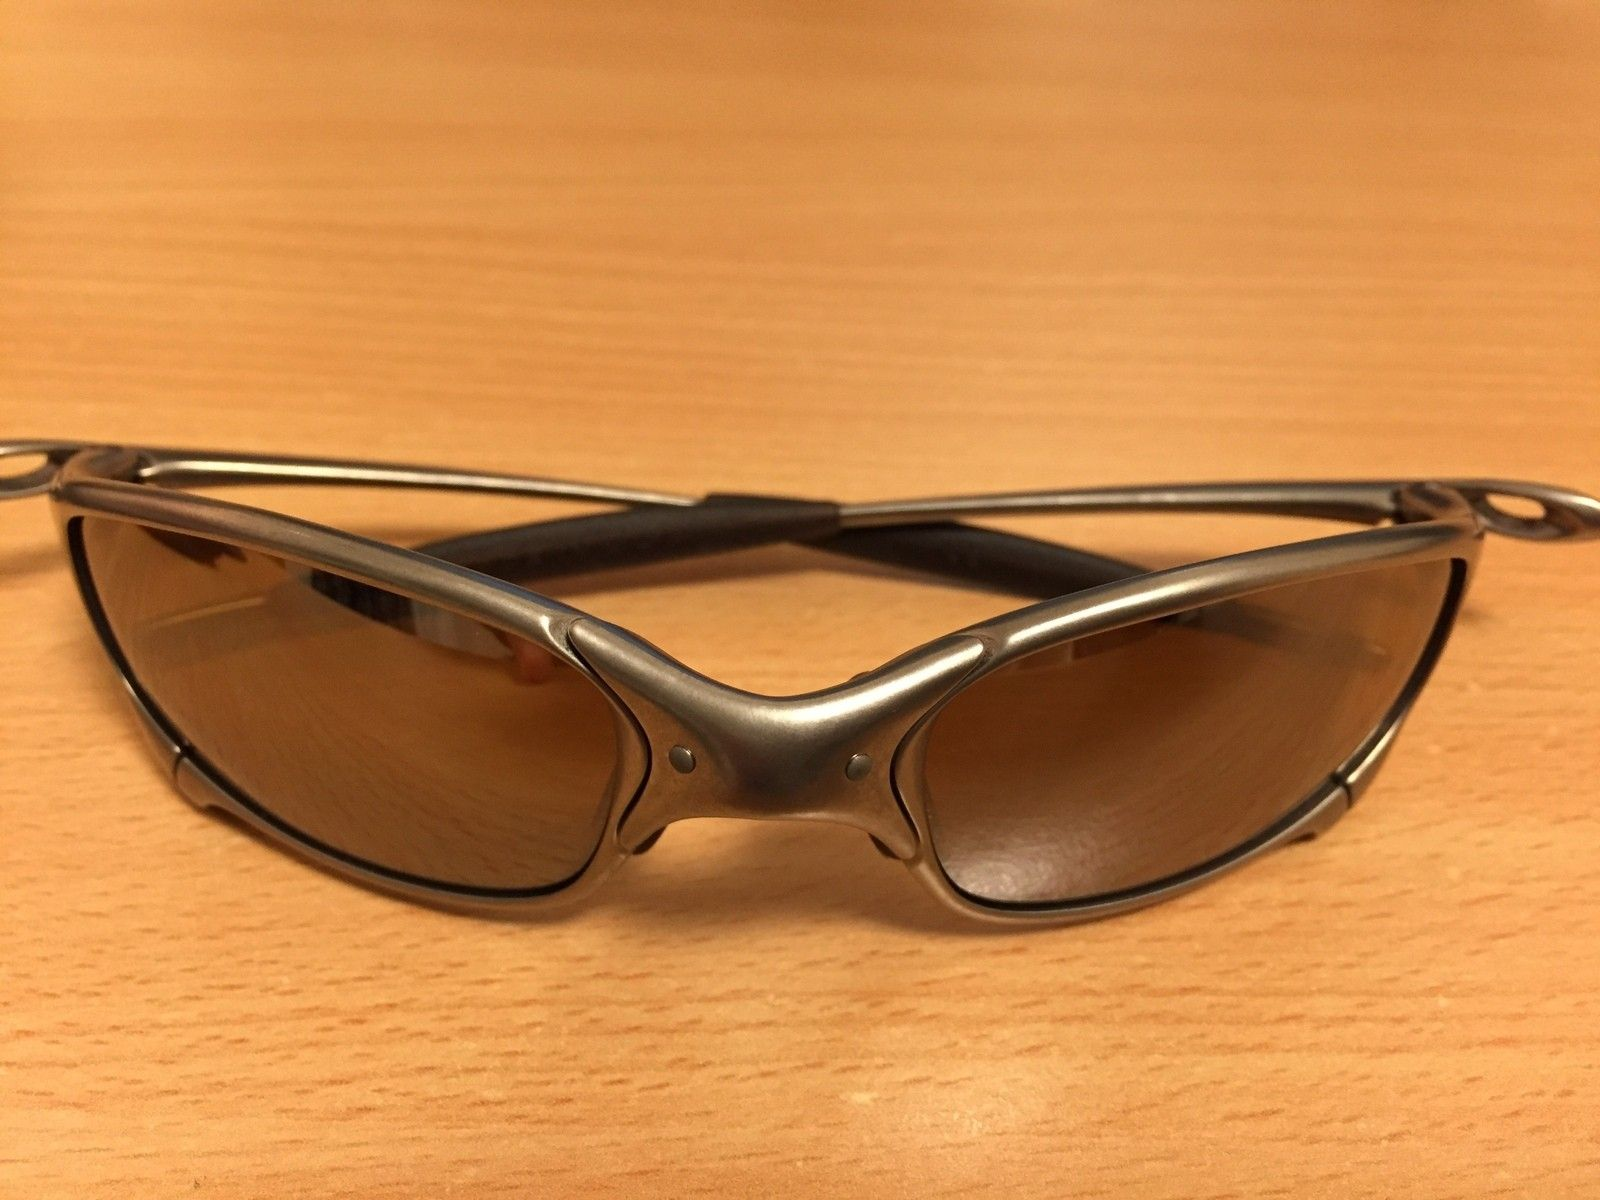 Saul's Xmetal Sunglasses (Closed but new one opened) - IMG_1296.JPG